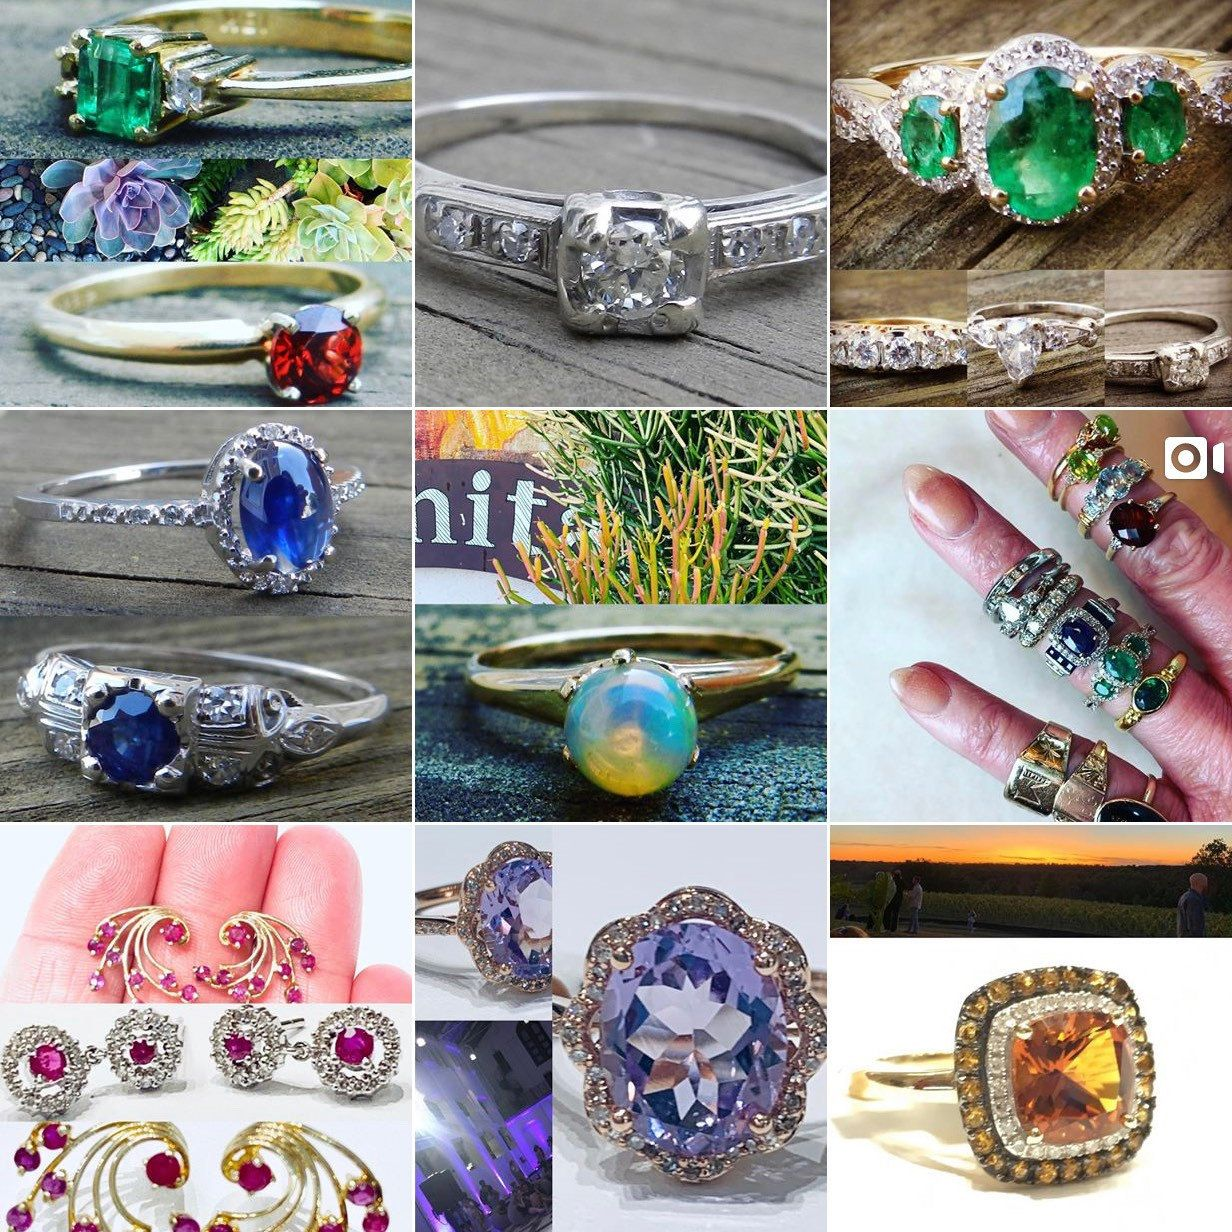 17+ Best place to sell estate jewelry near me ideas in 2021